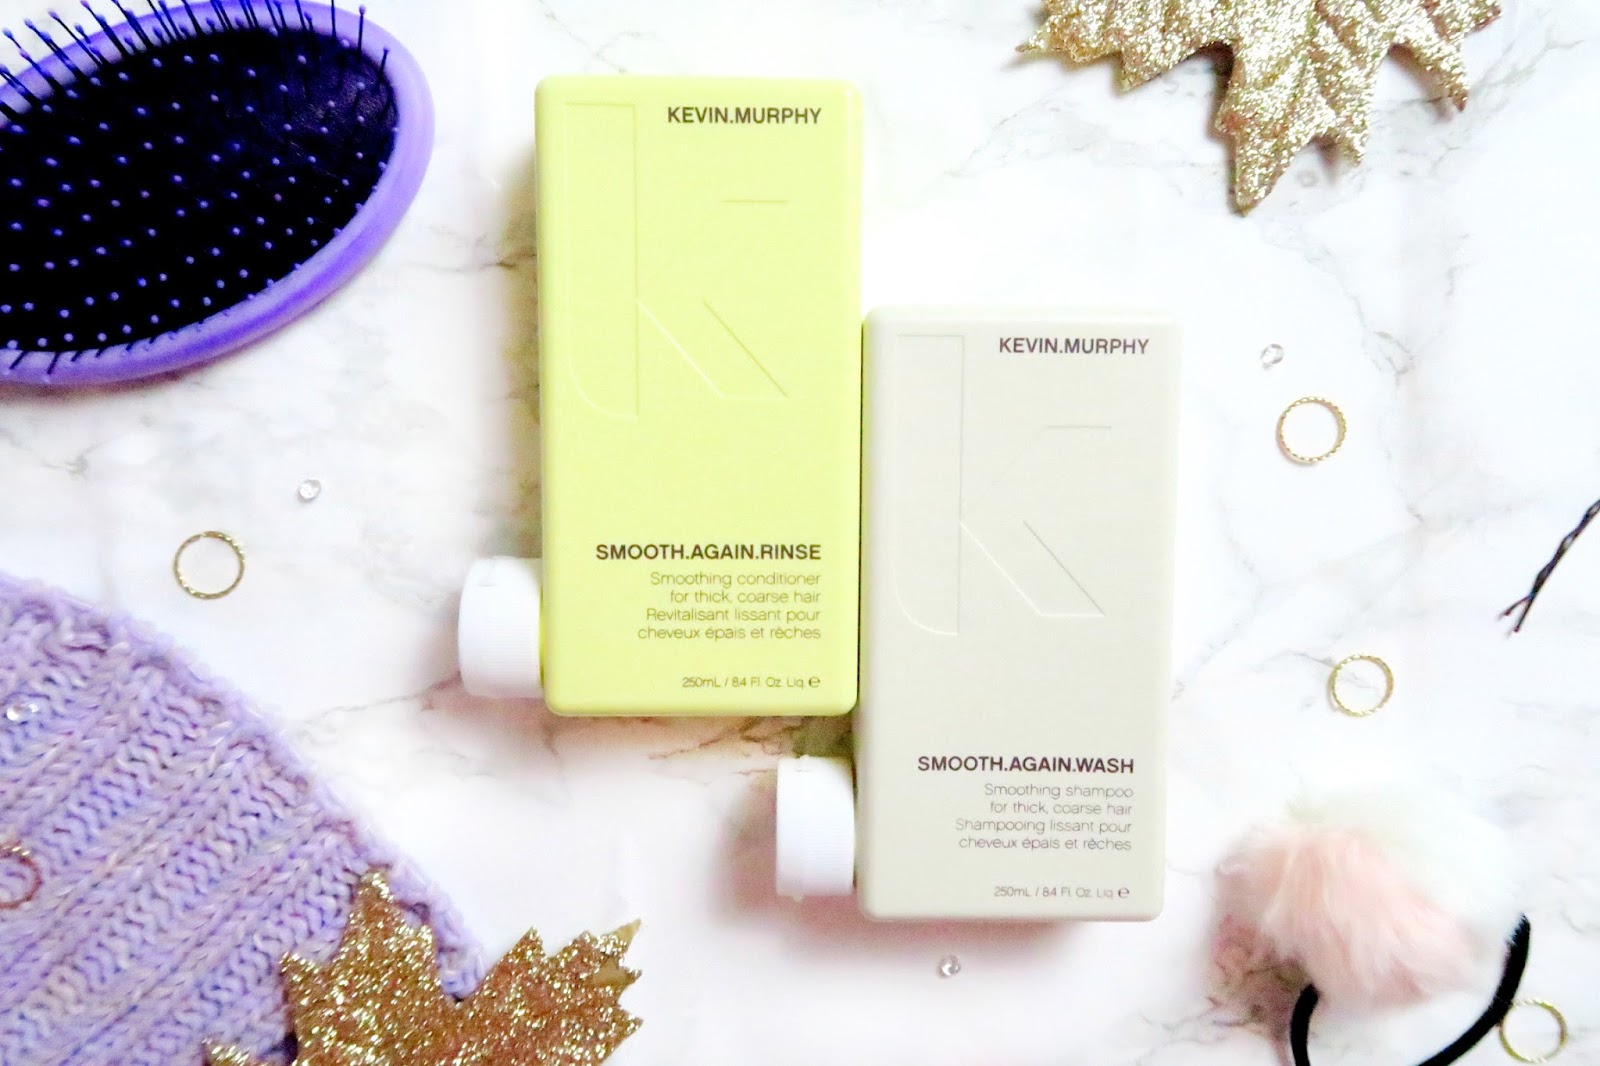 an image of KEVIN.MURPHY SMOOTH.AGAIN.WASH Smoothing Shampoo and SMOOTH.AGAIN.RINSE Smoothing Conditioner review